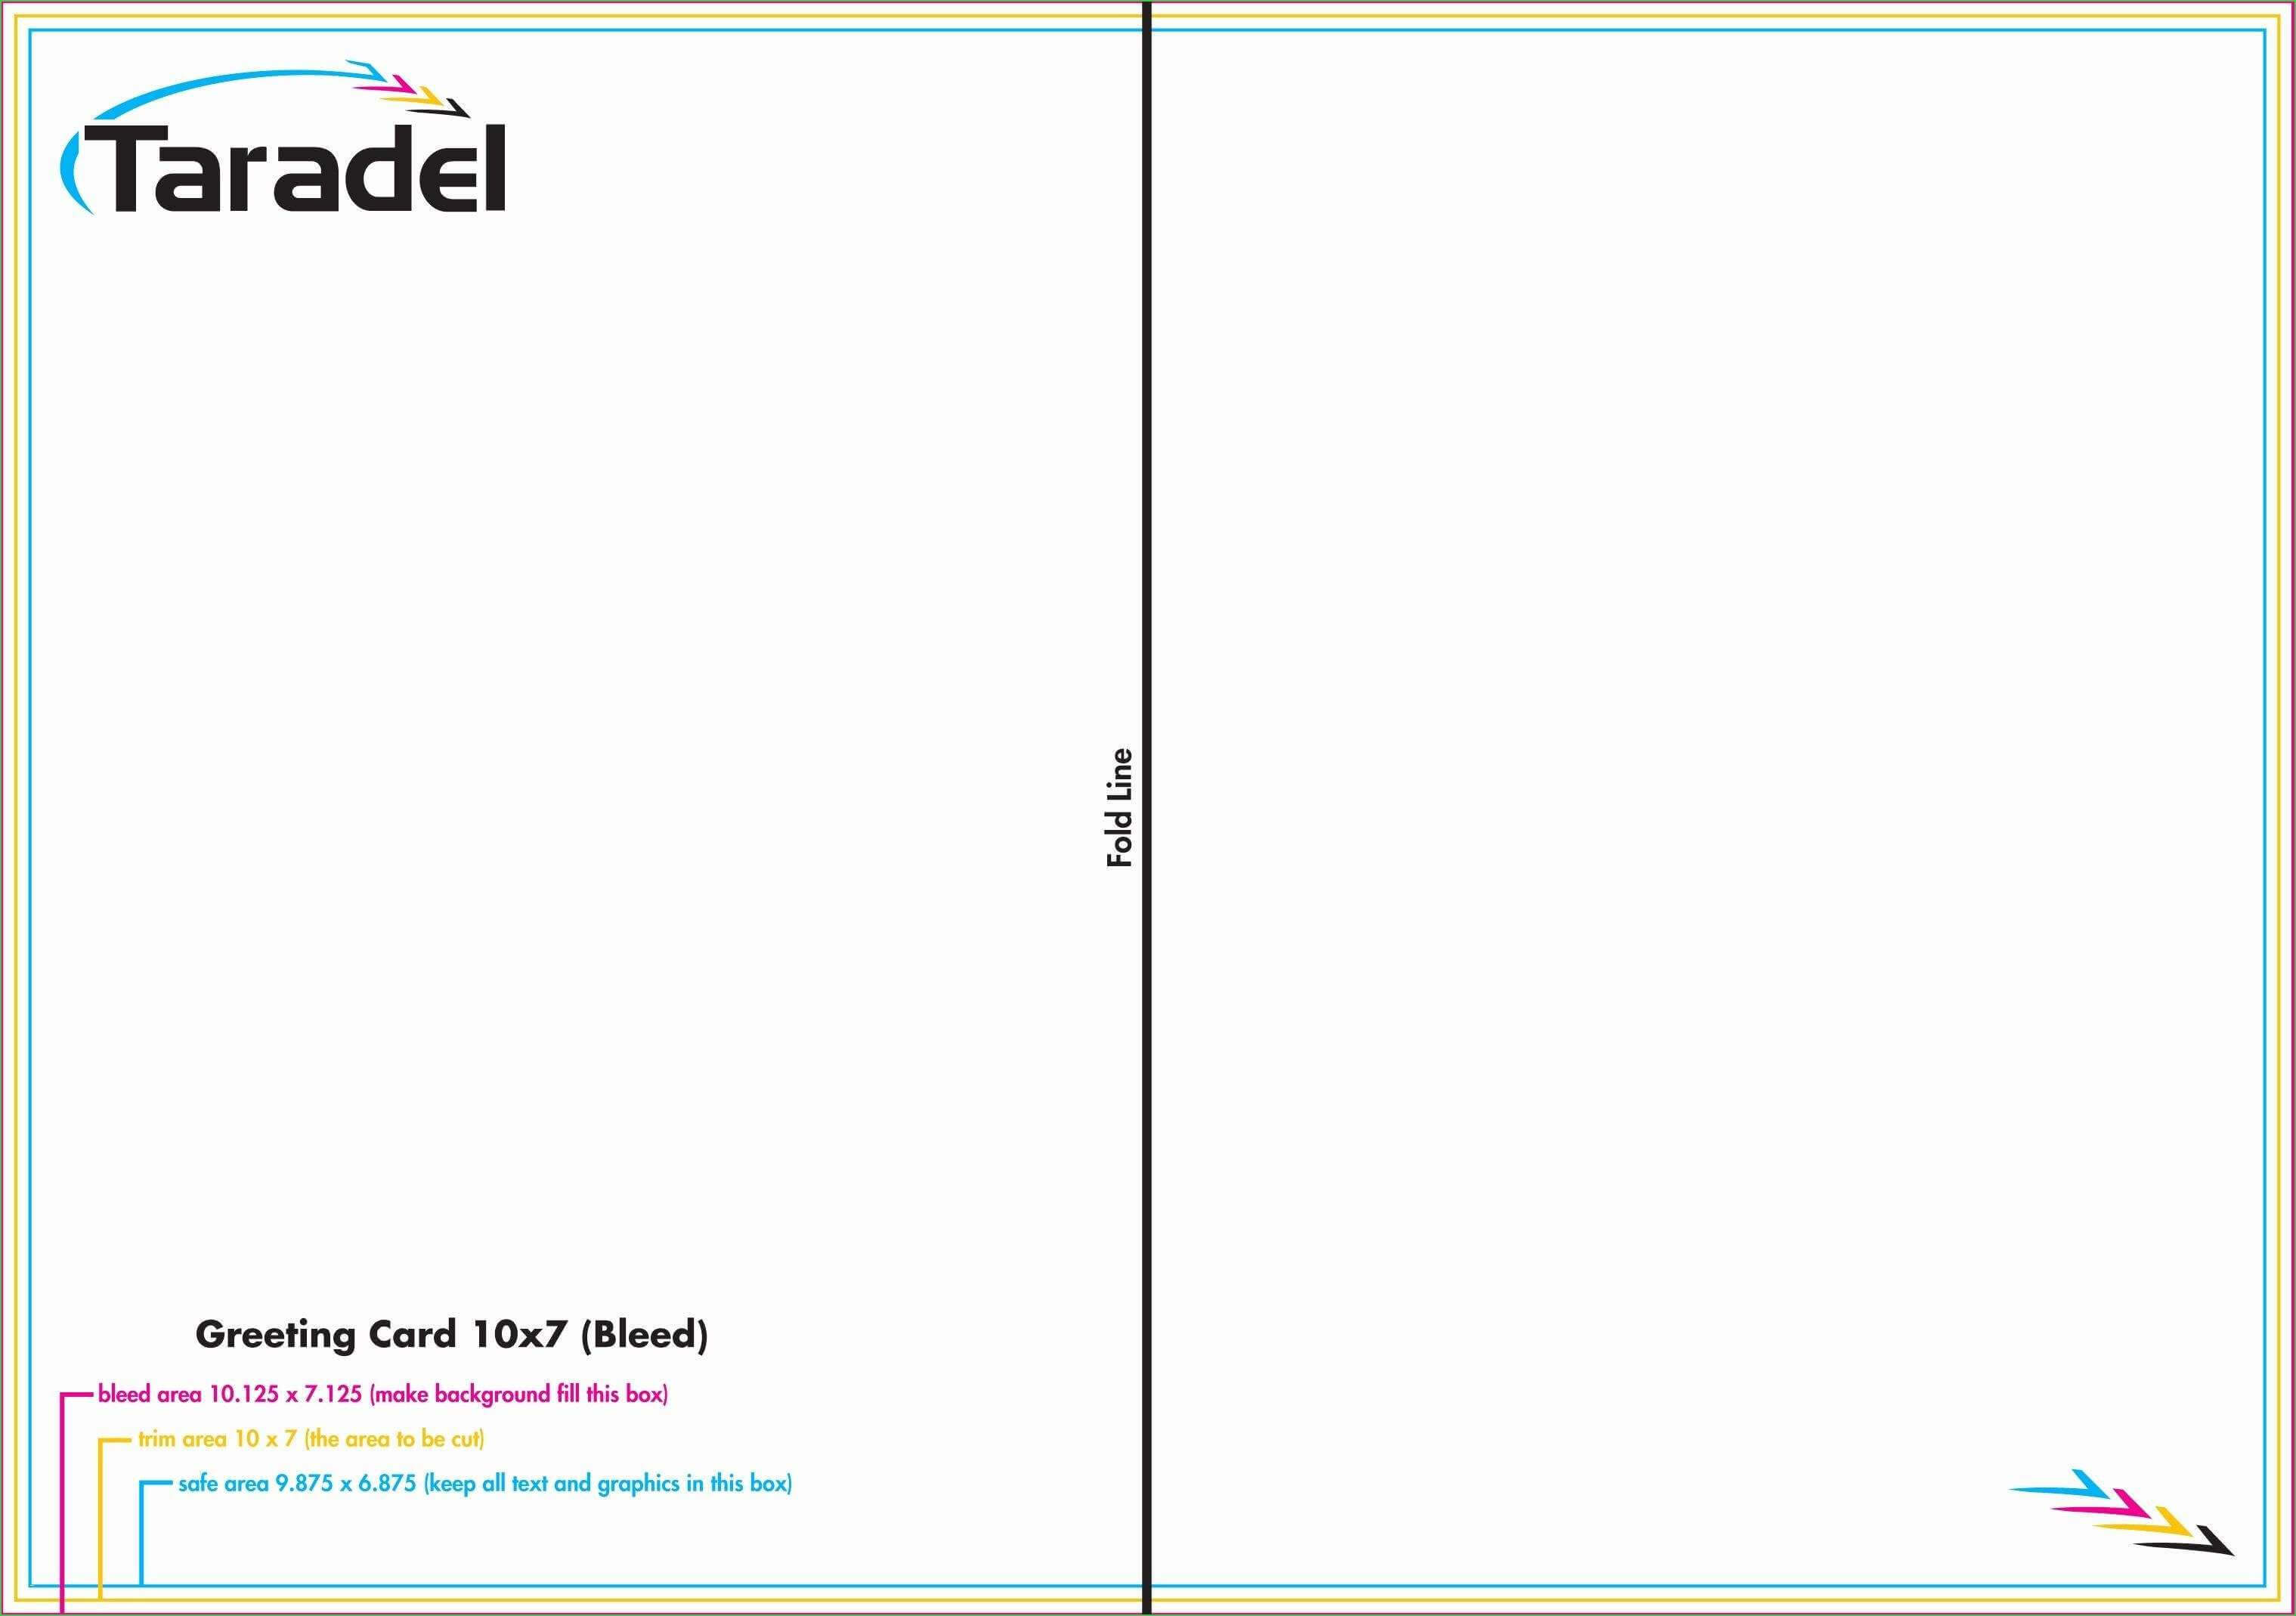 003 Quarter Fold Card Template Photoshop Indesign Greeting for Birthday Card Indesign Template